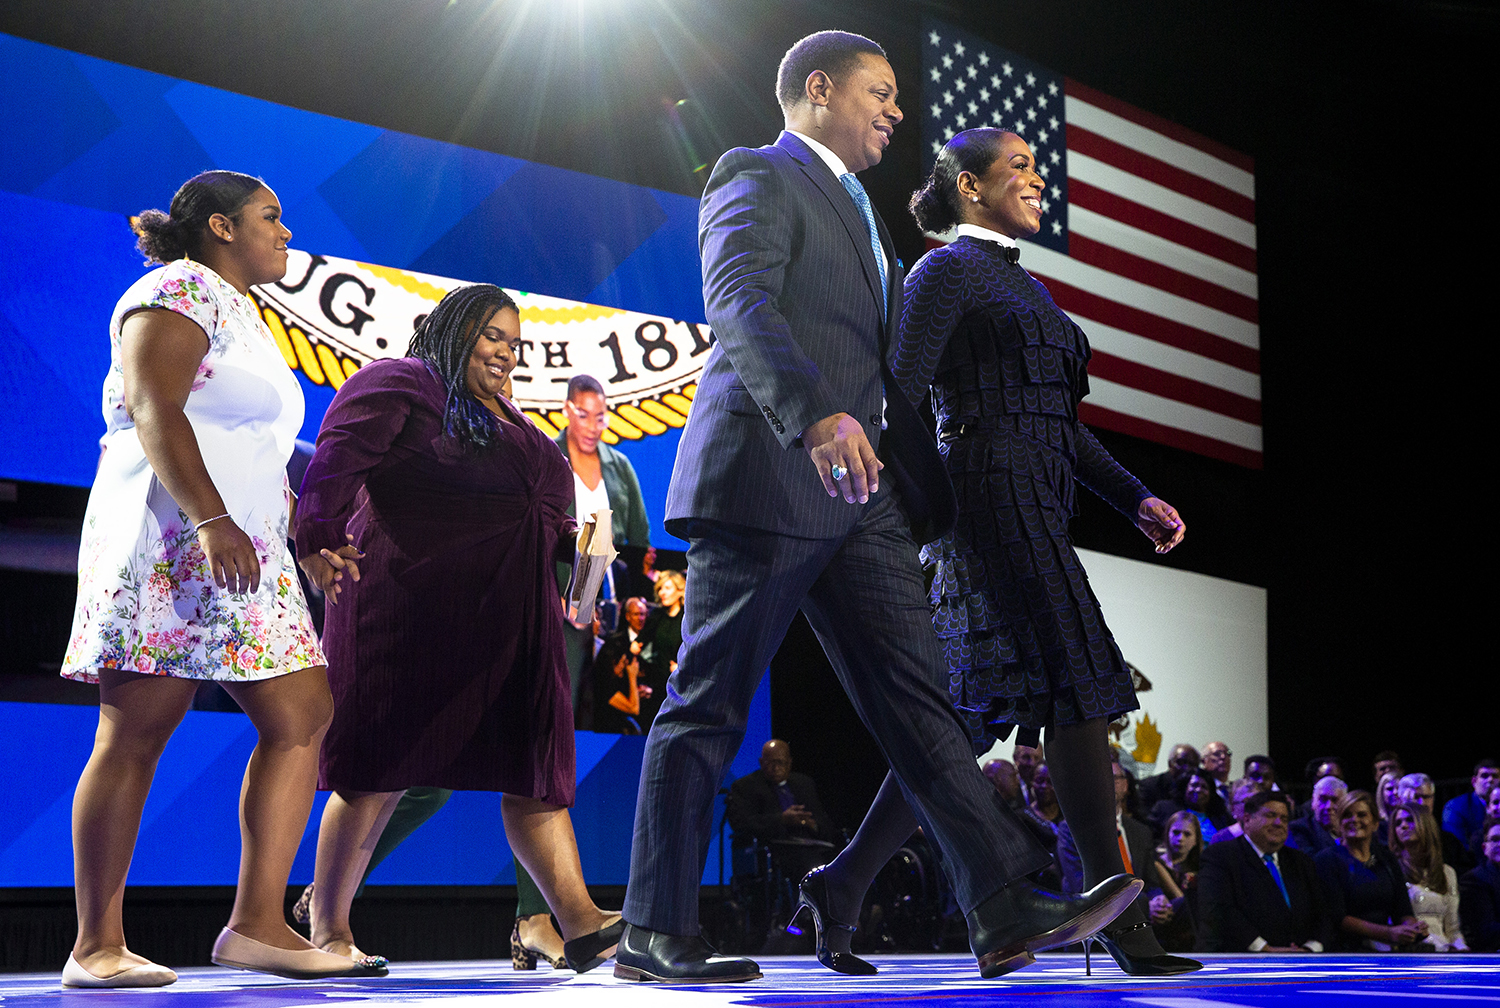 Lt. Gov.-elect Juliana Stratton, accompanied by her fiancé, Bryan Echols and her daughters, Ryan, Tyler and Cassidy, not seen, walks onto the stage to take the oath of office during the Illinois Inaugural Ceremony Monday, Jan. 14, 2019 a the Bank of Springfield Center in Springfield, Ill. [Rich Saal/The State Journal-Register]